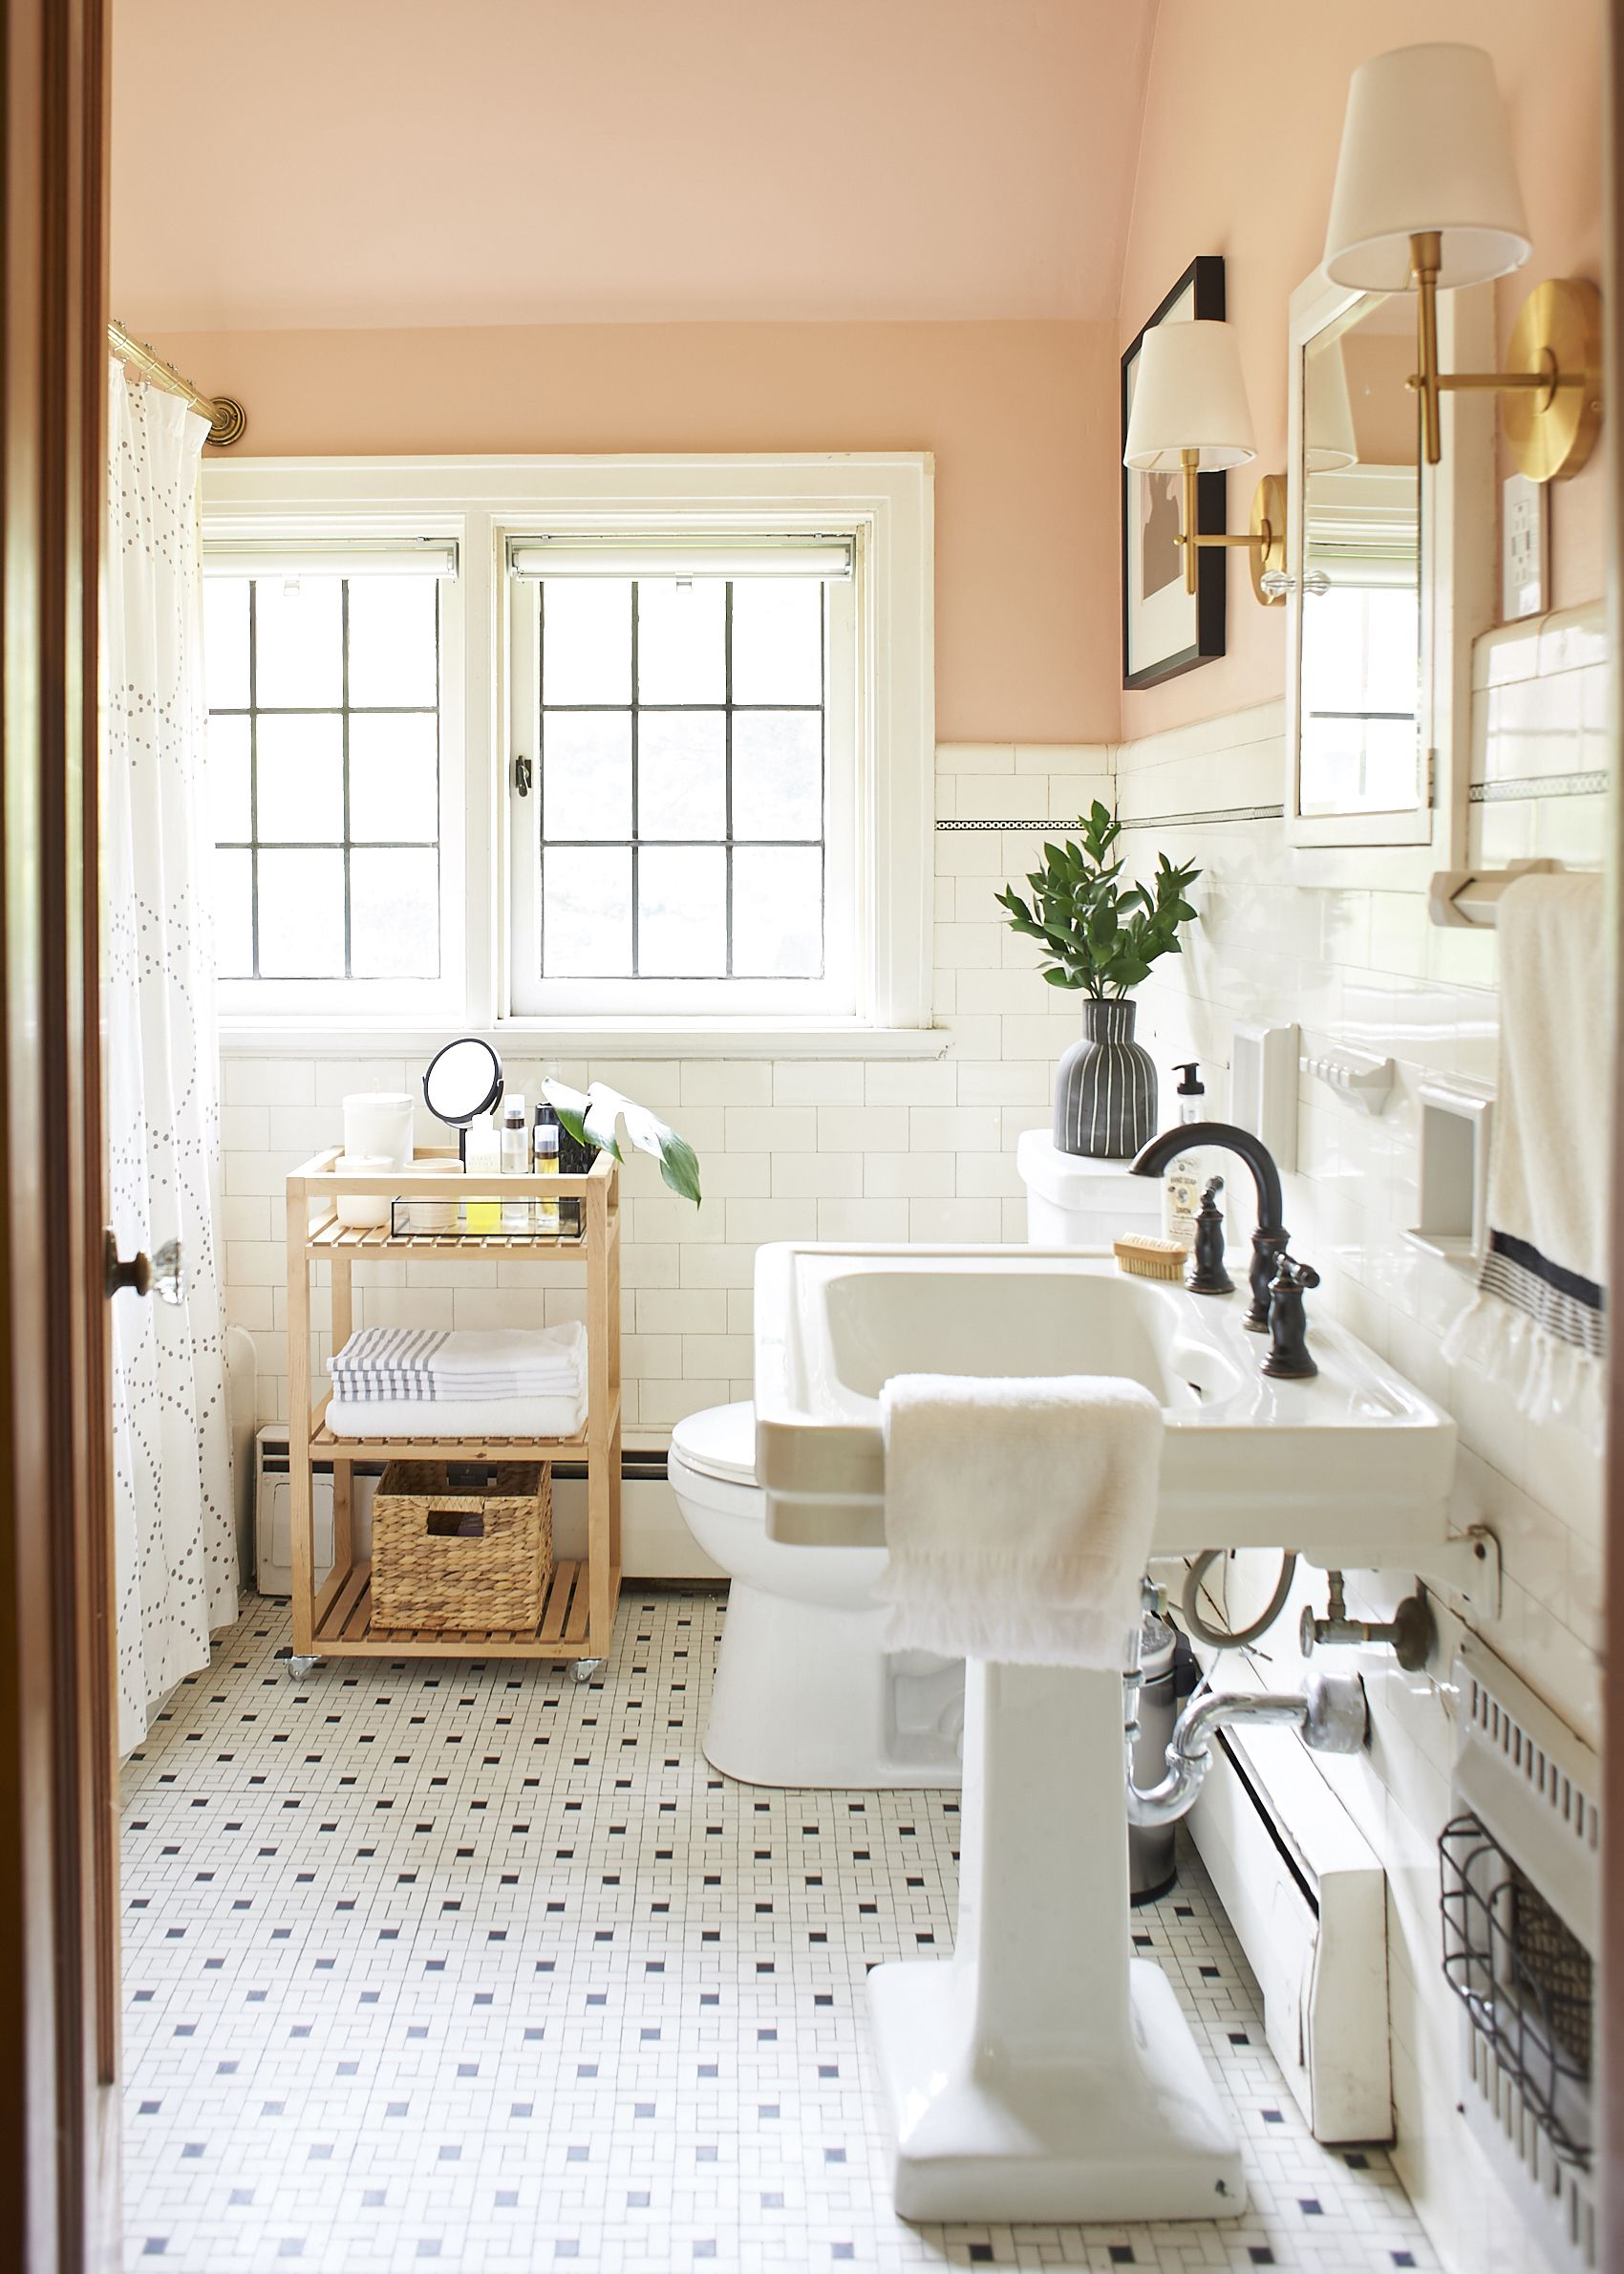 Design Sponge Bathrooms Beauteous Blush And Moody Tones In A Pittsburgh Home For Photographers Via Design Decoration